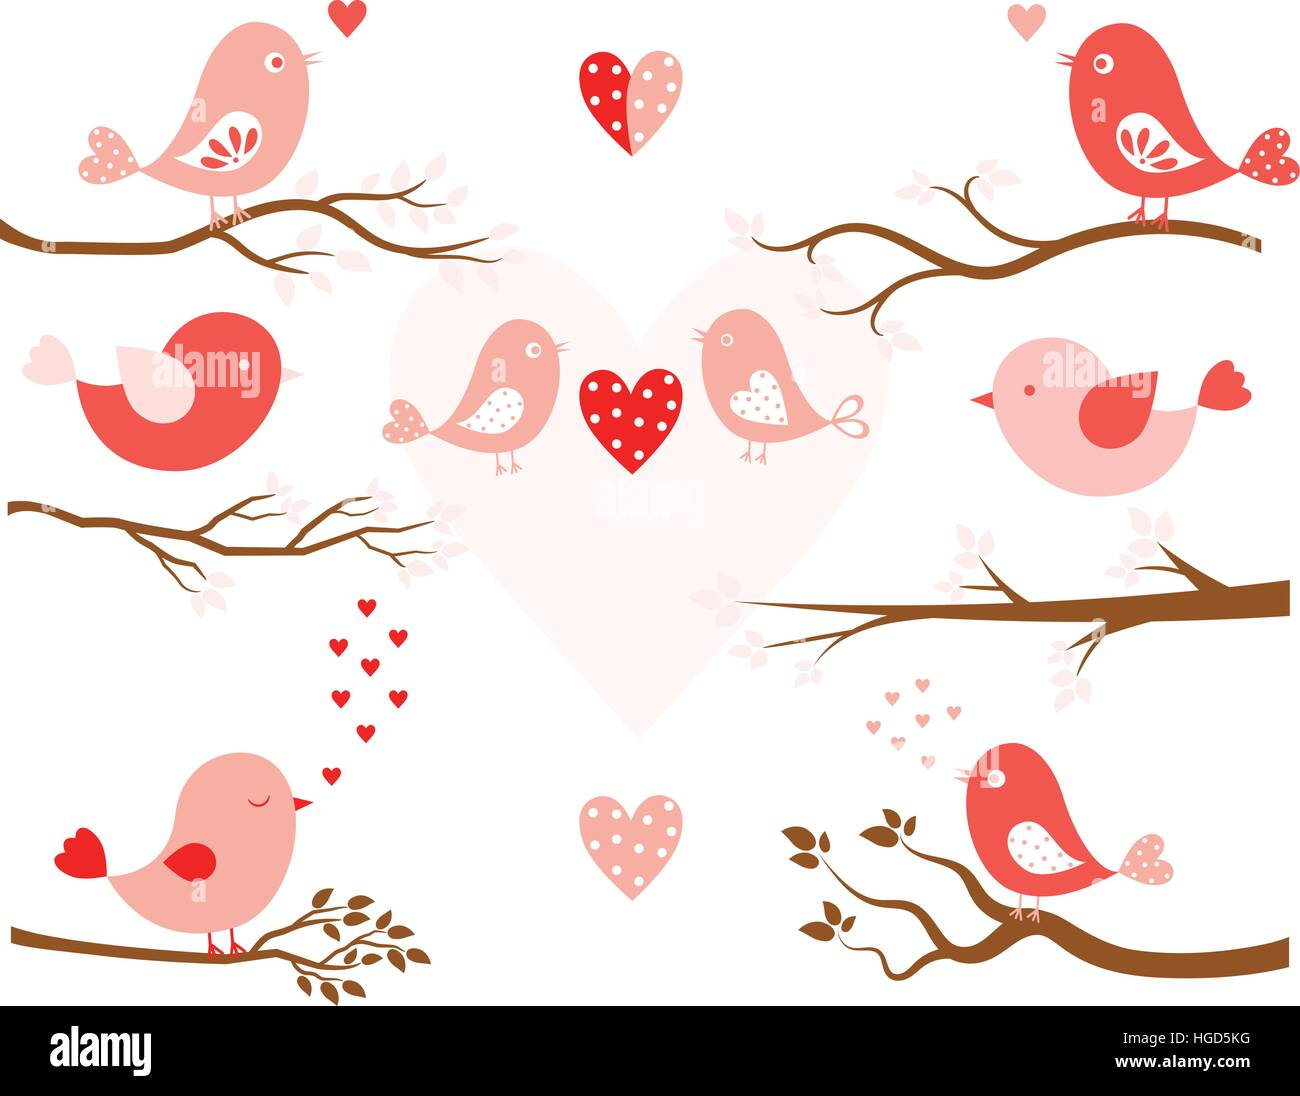 Stylized Birds In Pink And Tree Branches In Brown In Flat